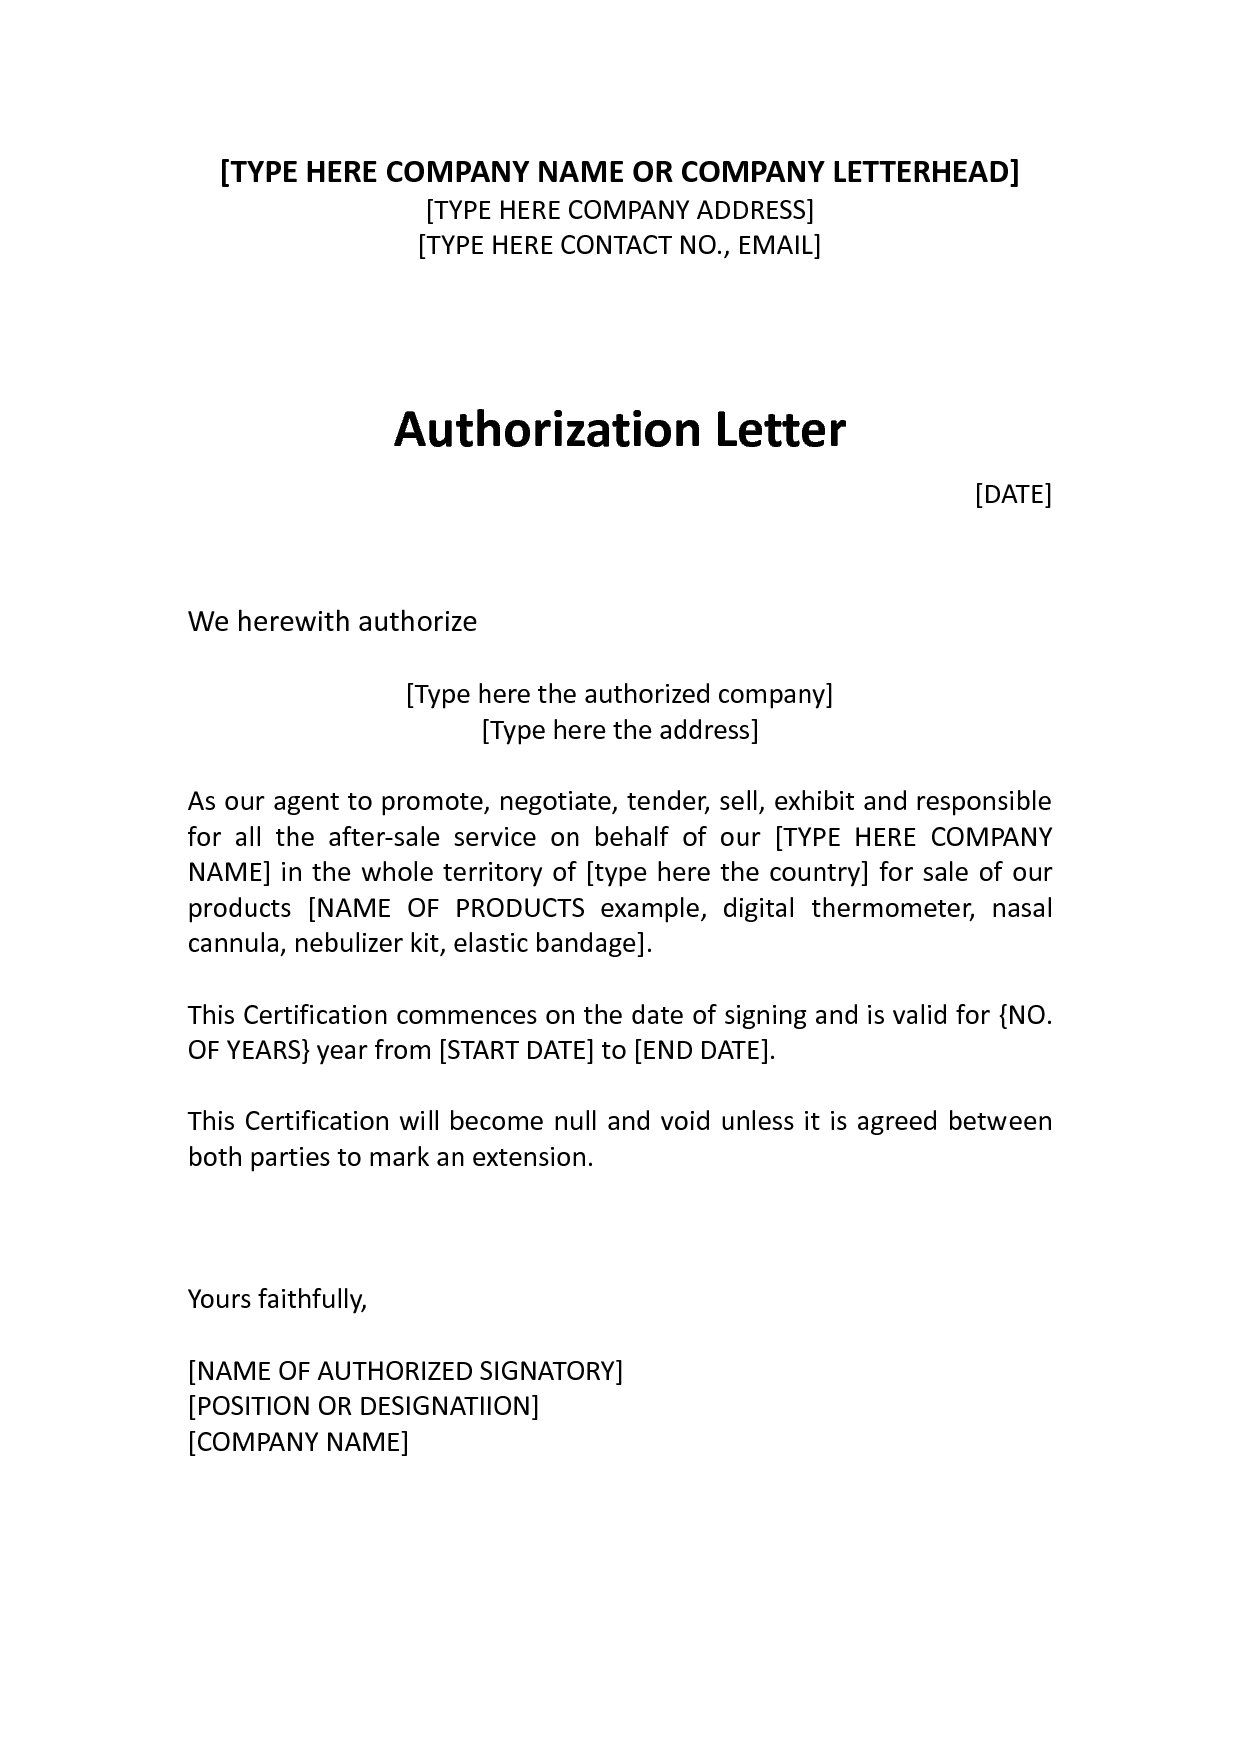 Authorization distributor letter sample distributor dealer authorization distributor letter sample distributor dealer authorization letter given by a company to its distributor or dealer spiritdancerdesigns Images